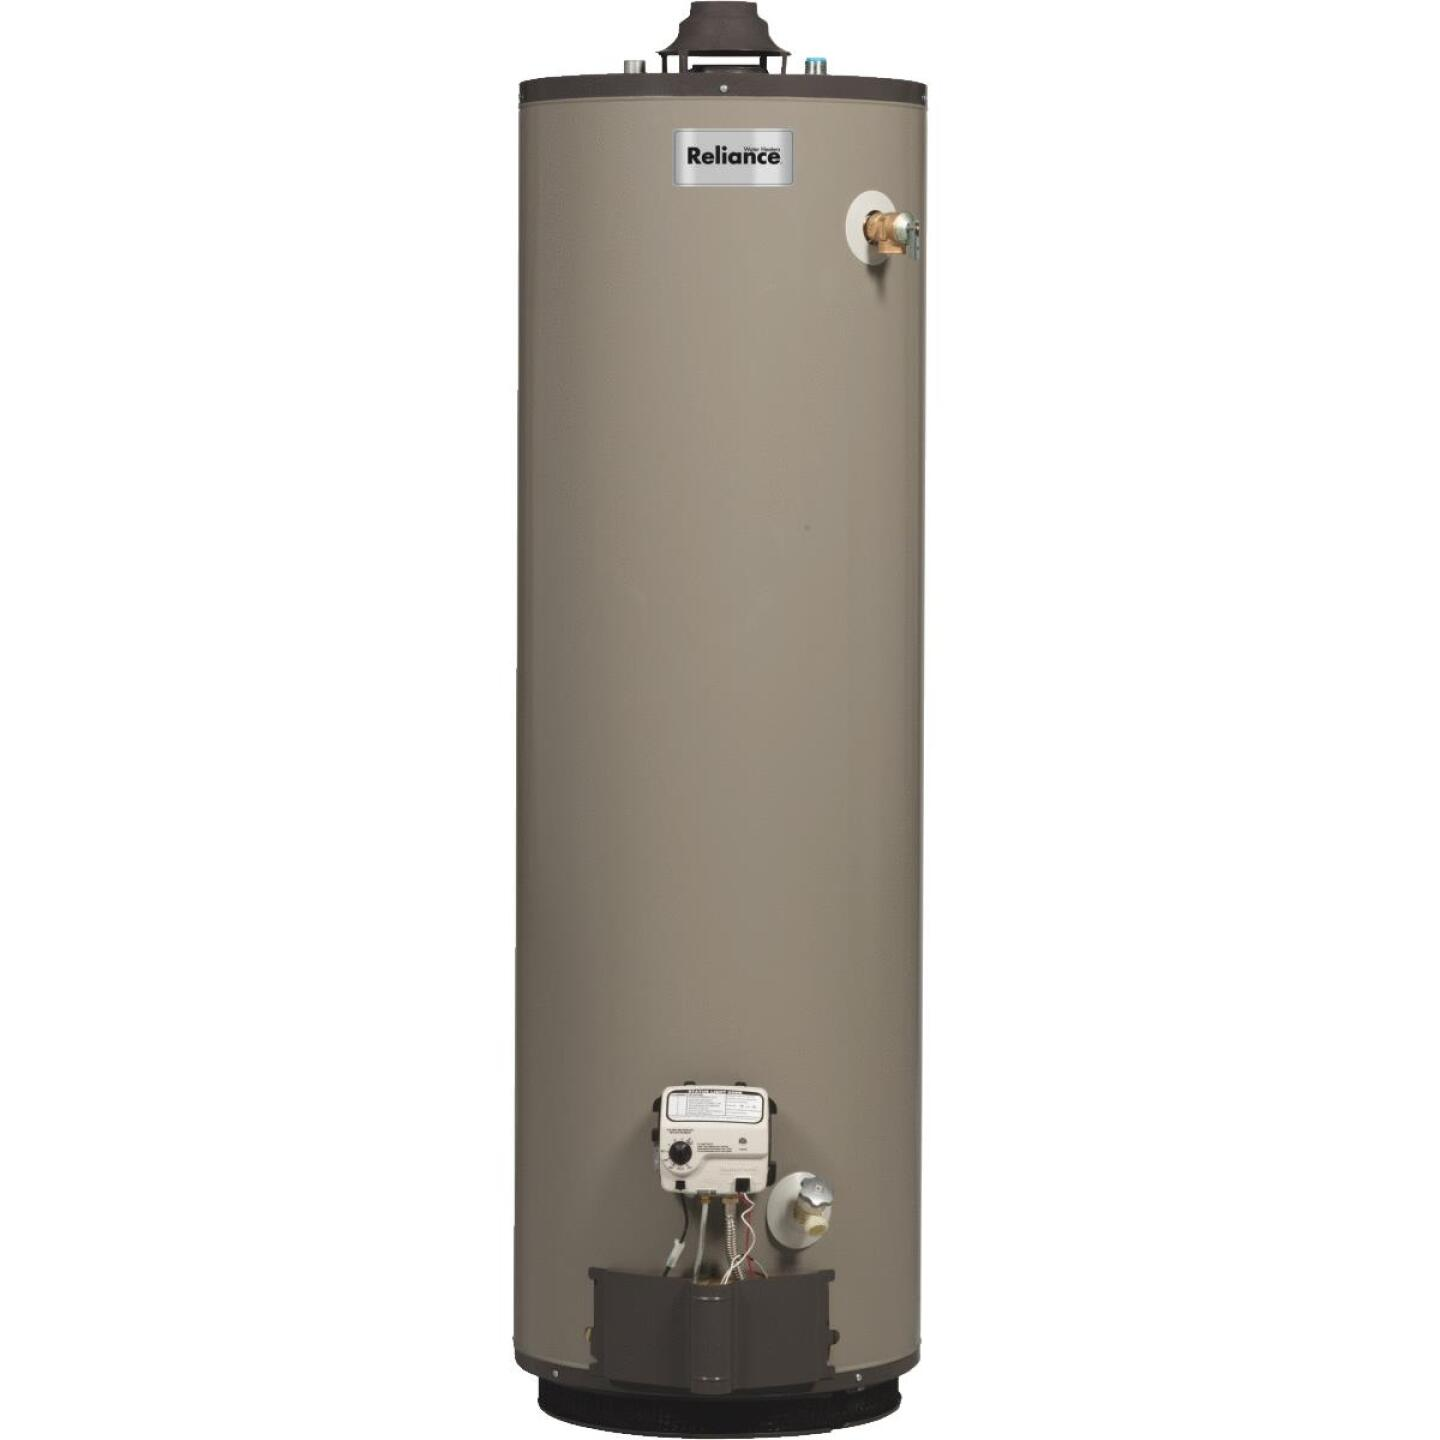 Reliance 40 Gal. Tall 9 Yr. 40,000 BTU Self-Cleaning Natural Gas Water Heater Image 1